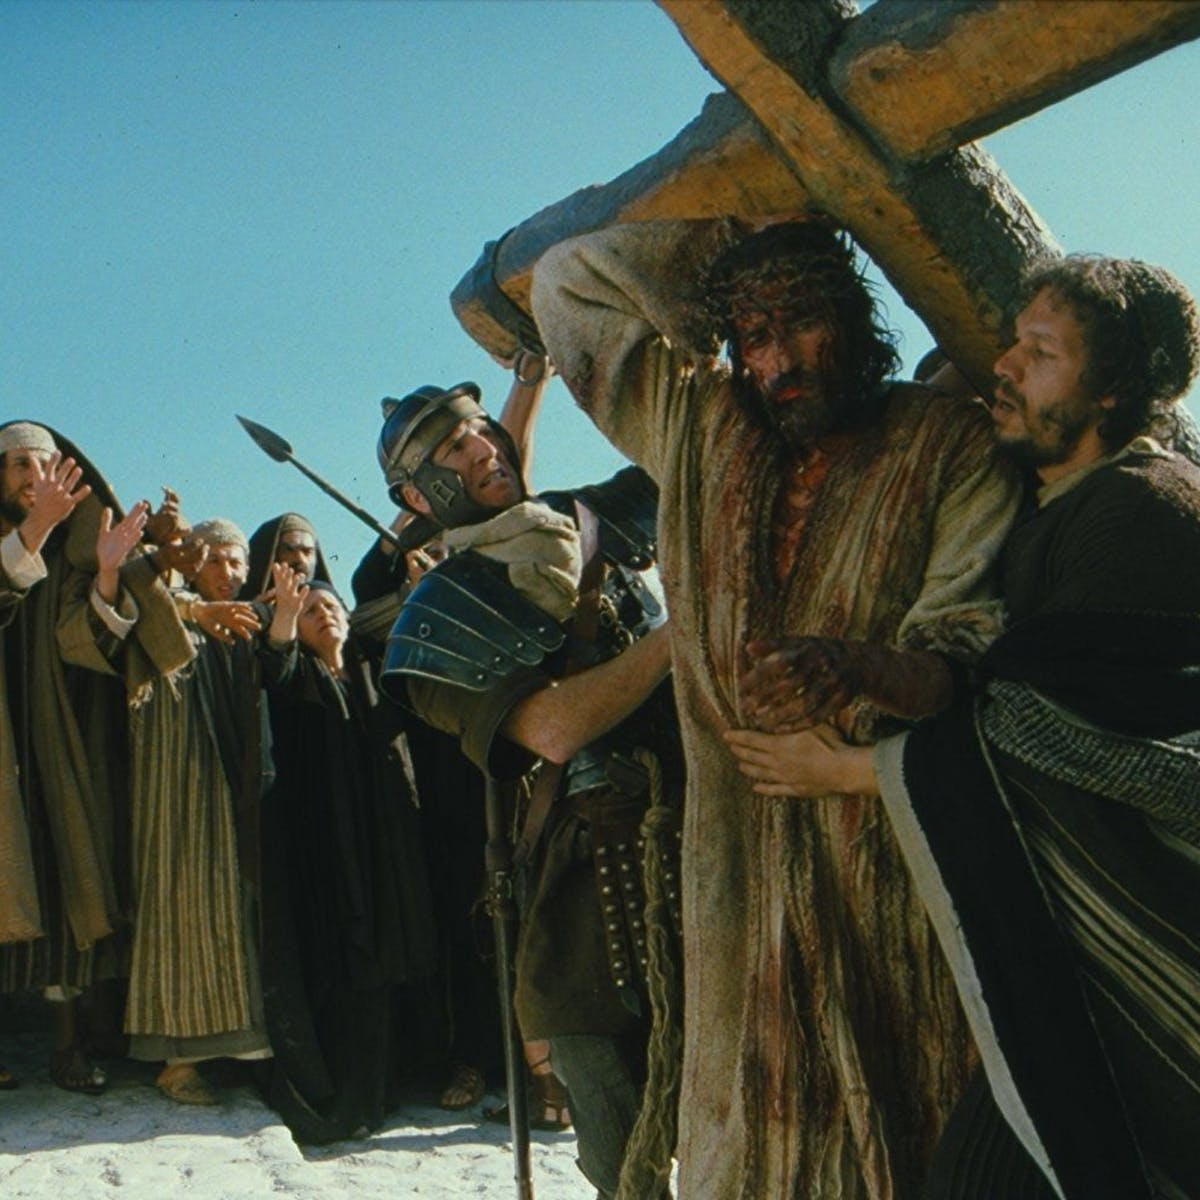 What drives the appeal of 'Passion of the Christ' and other films on